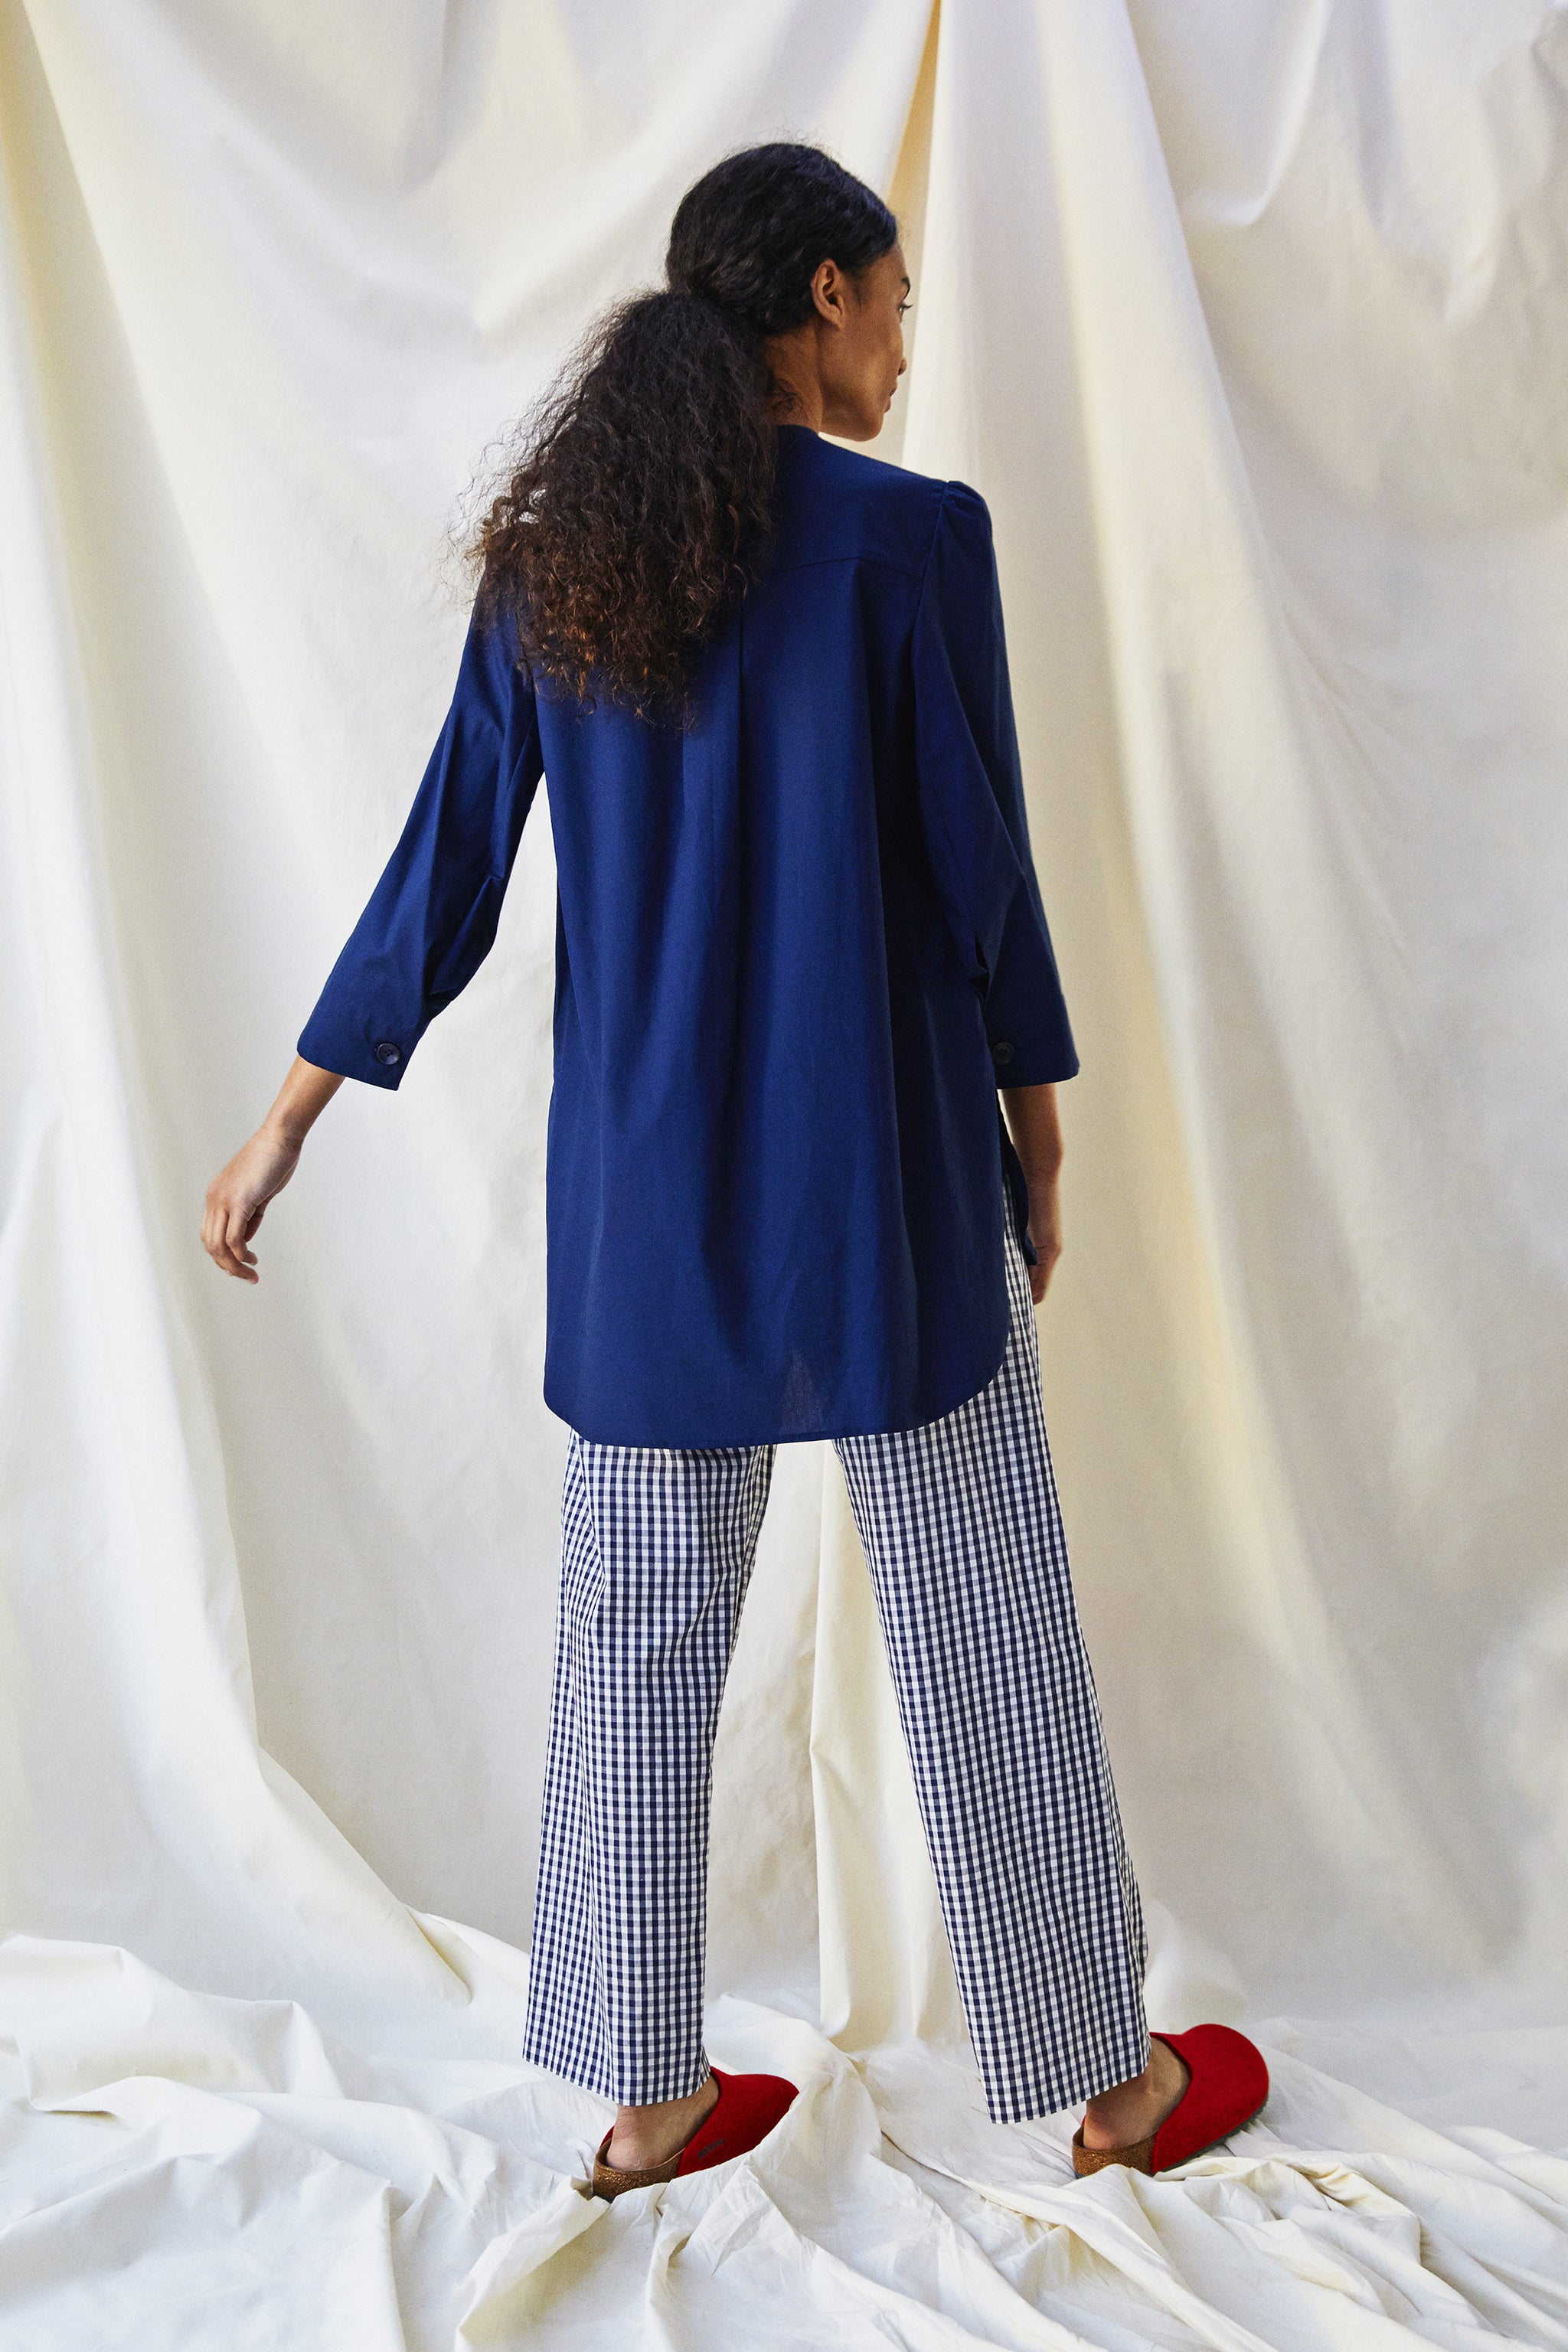 The Bethan Shirt - Indigo Blue - Alice Early